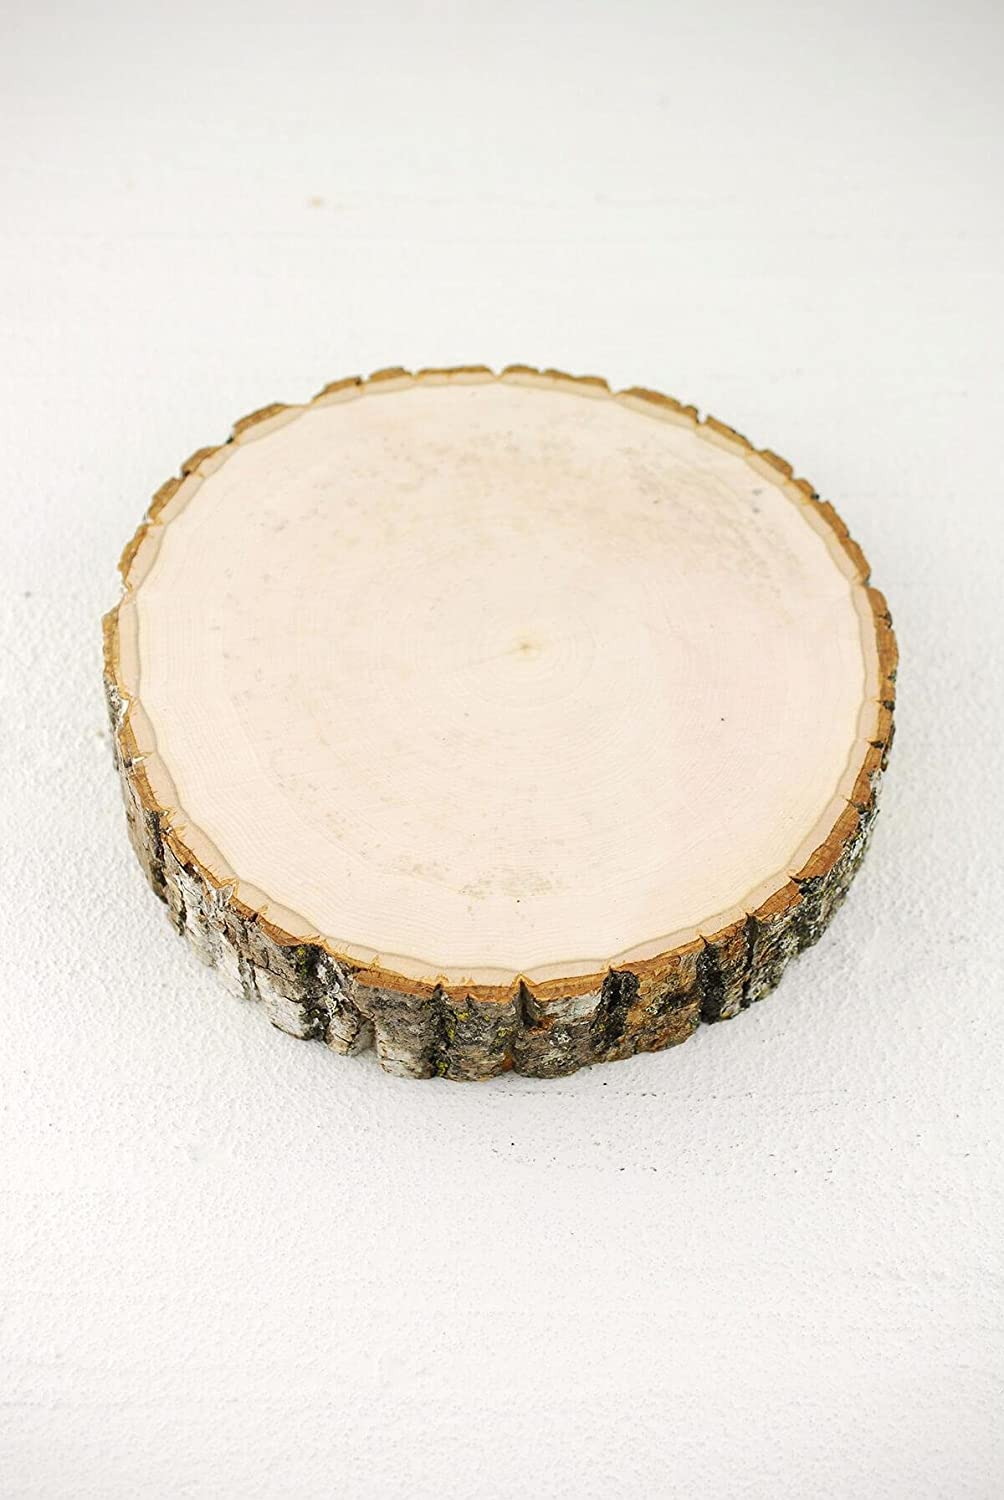 Max 69% Year-end annual account OFF Richland Wood Slice 8-12